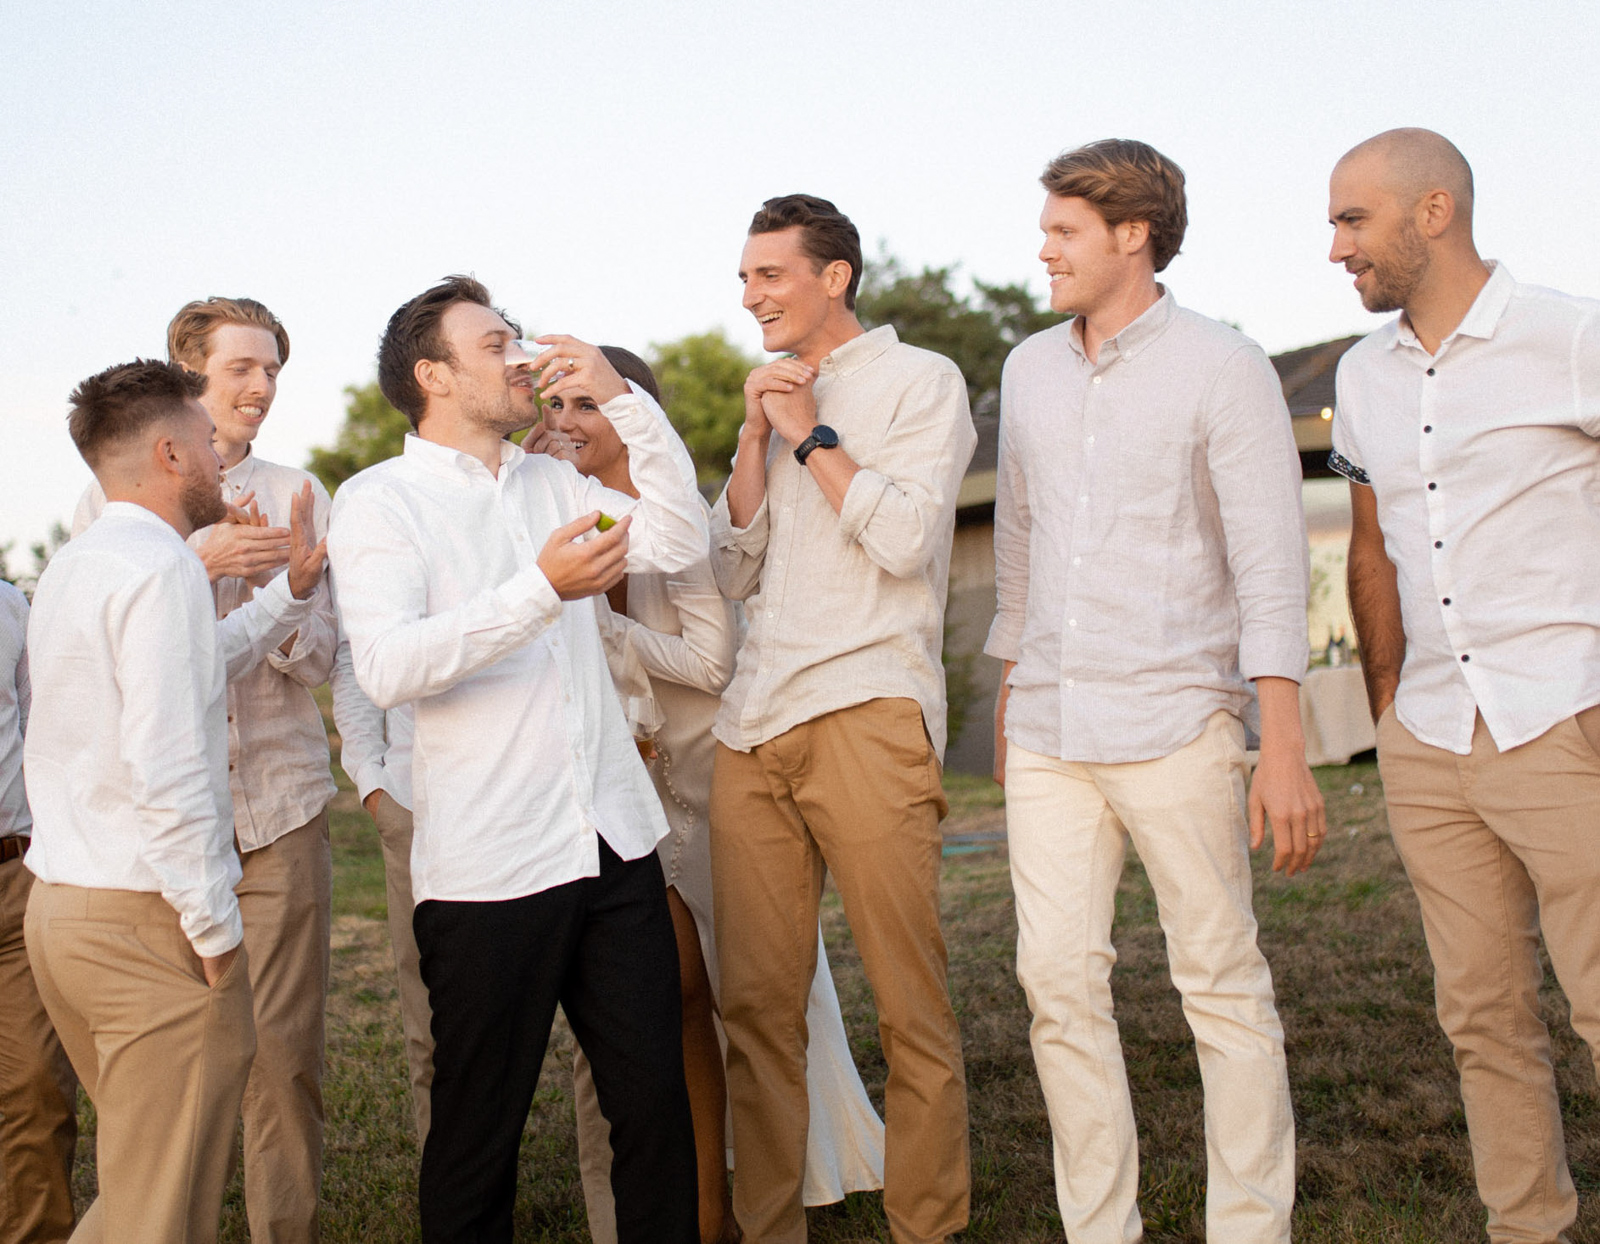 groom with groomsmen in tan pants and white shirts